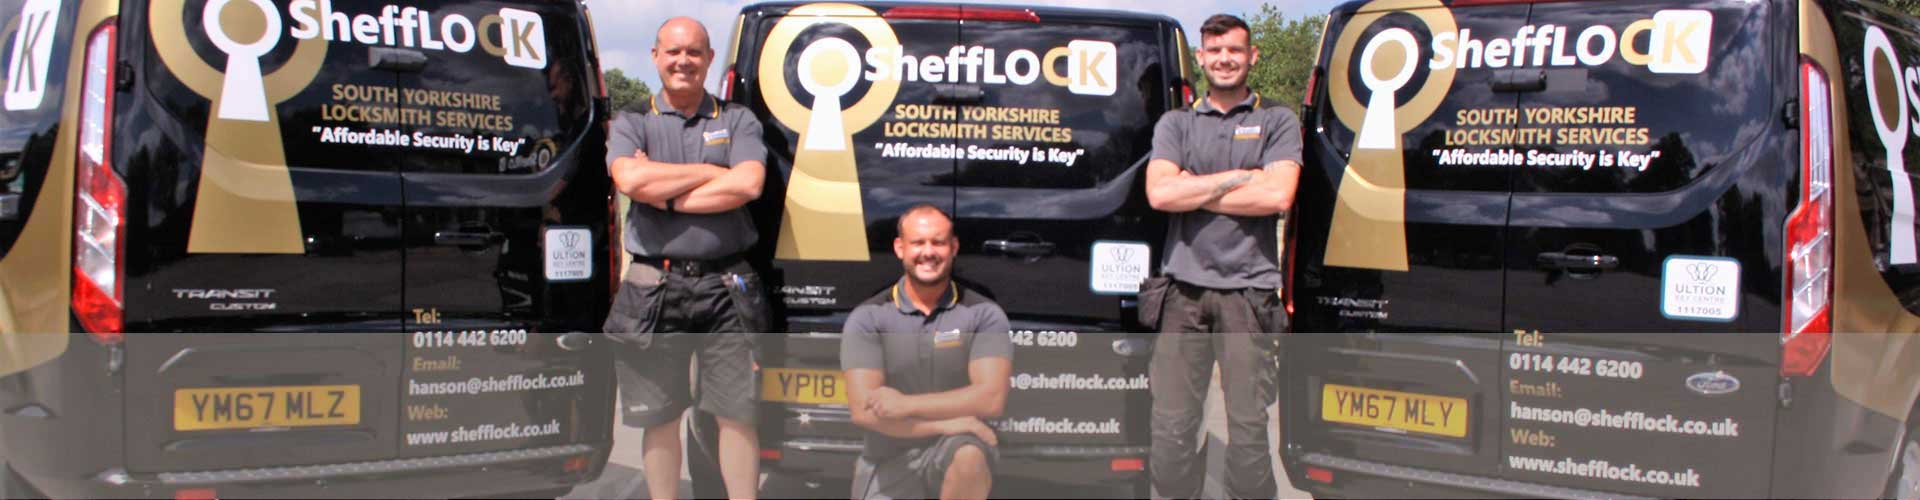 Barnsley Locksmiths